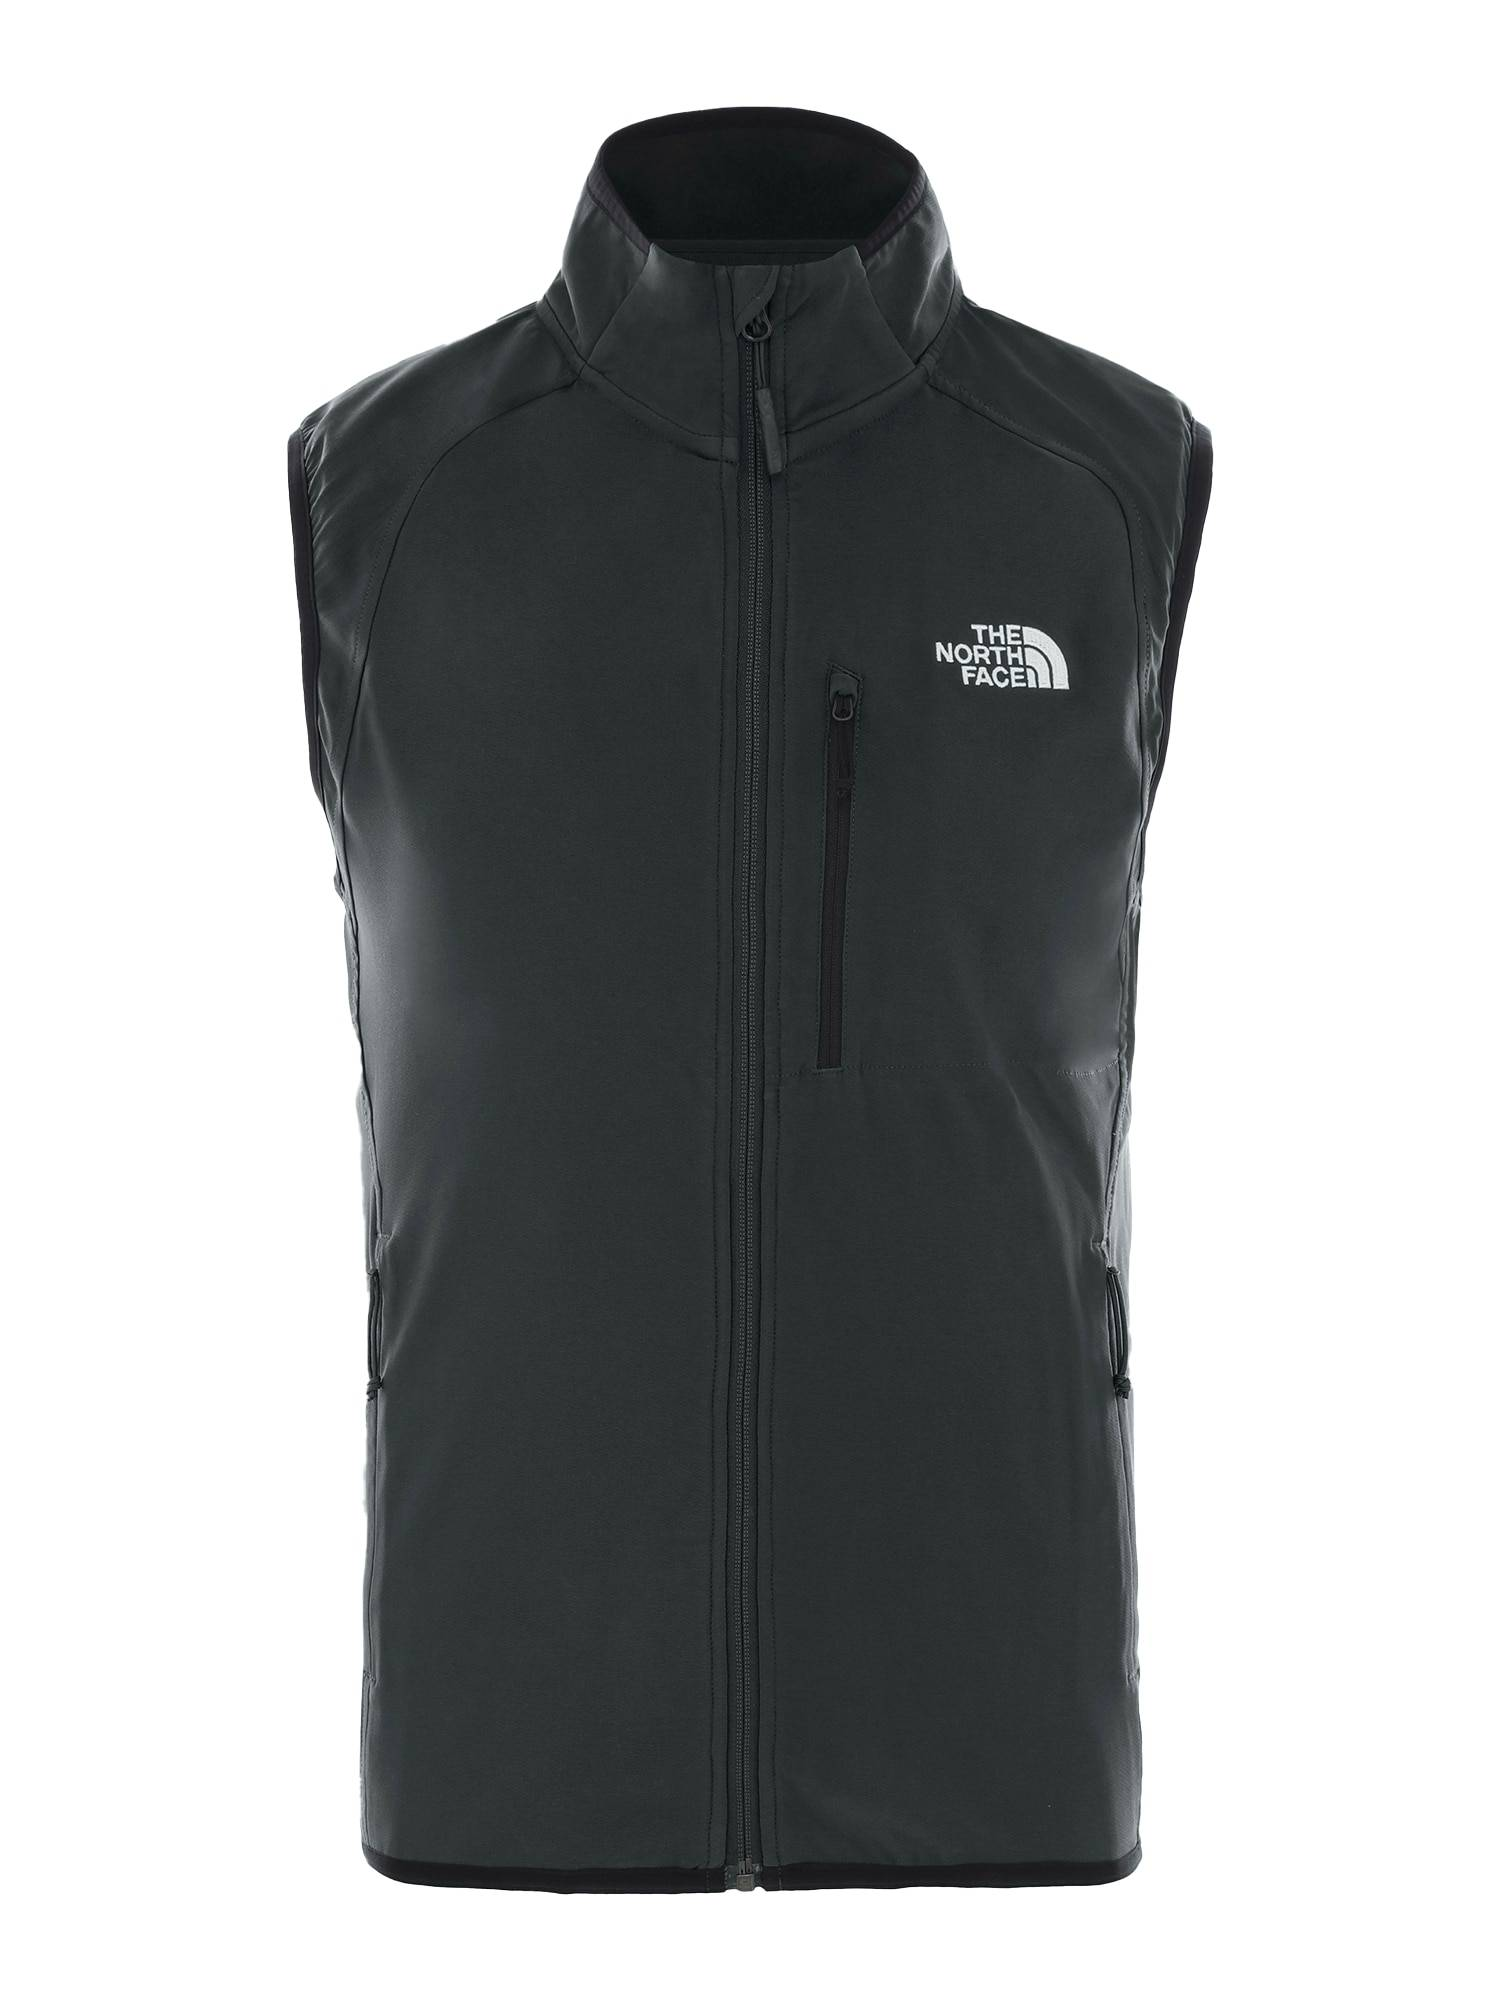 THE NORTH FACE Gilet  - Noir - Taille: M - male